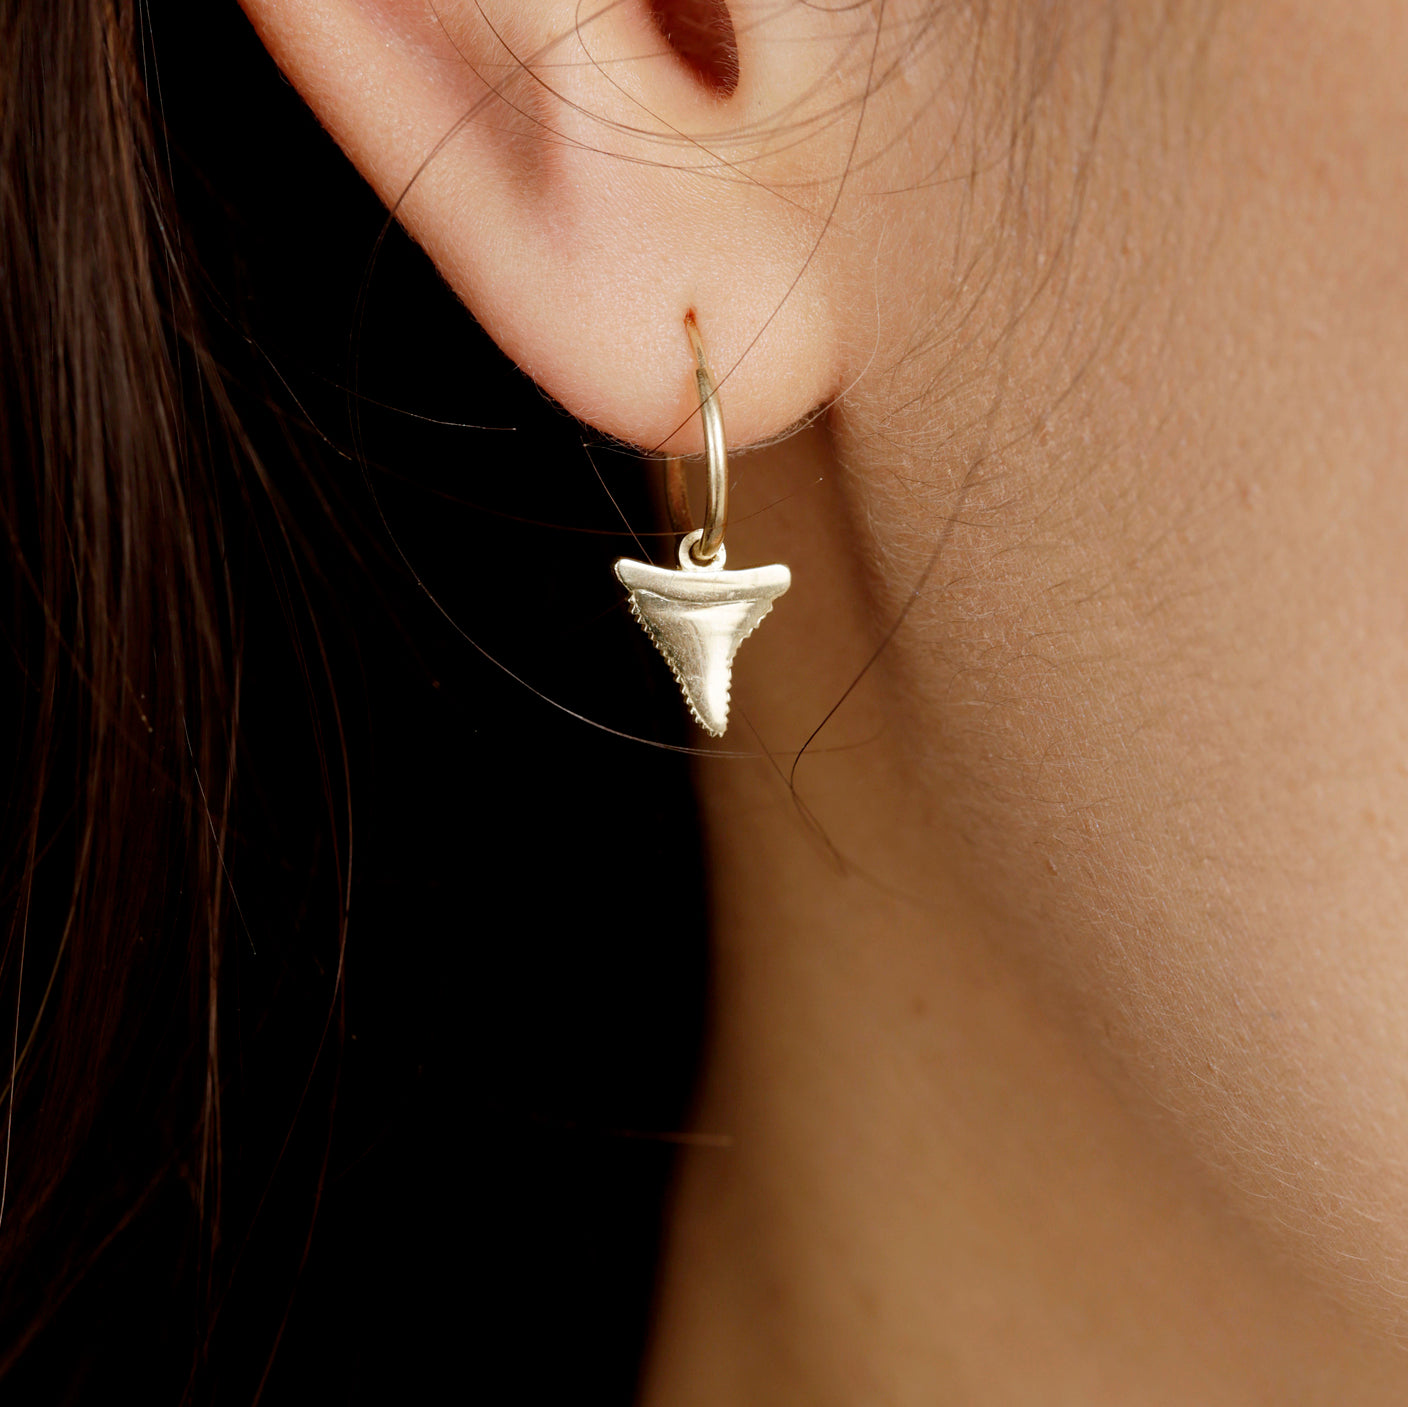 SHARK TOOTH EARRING